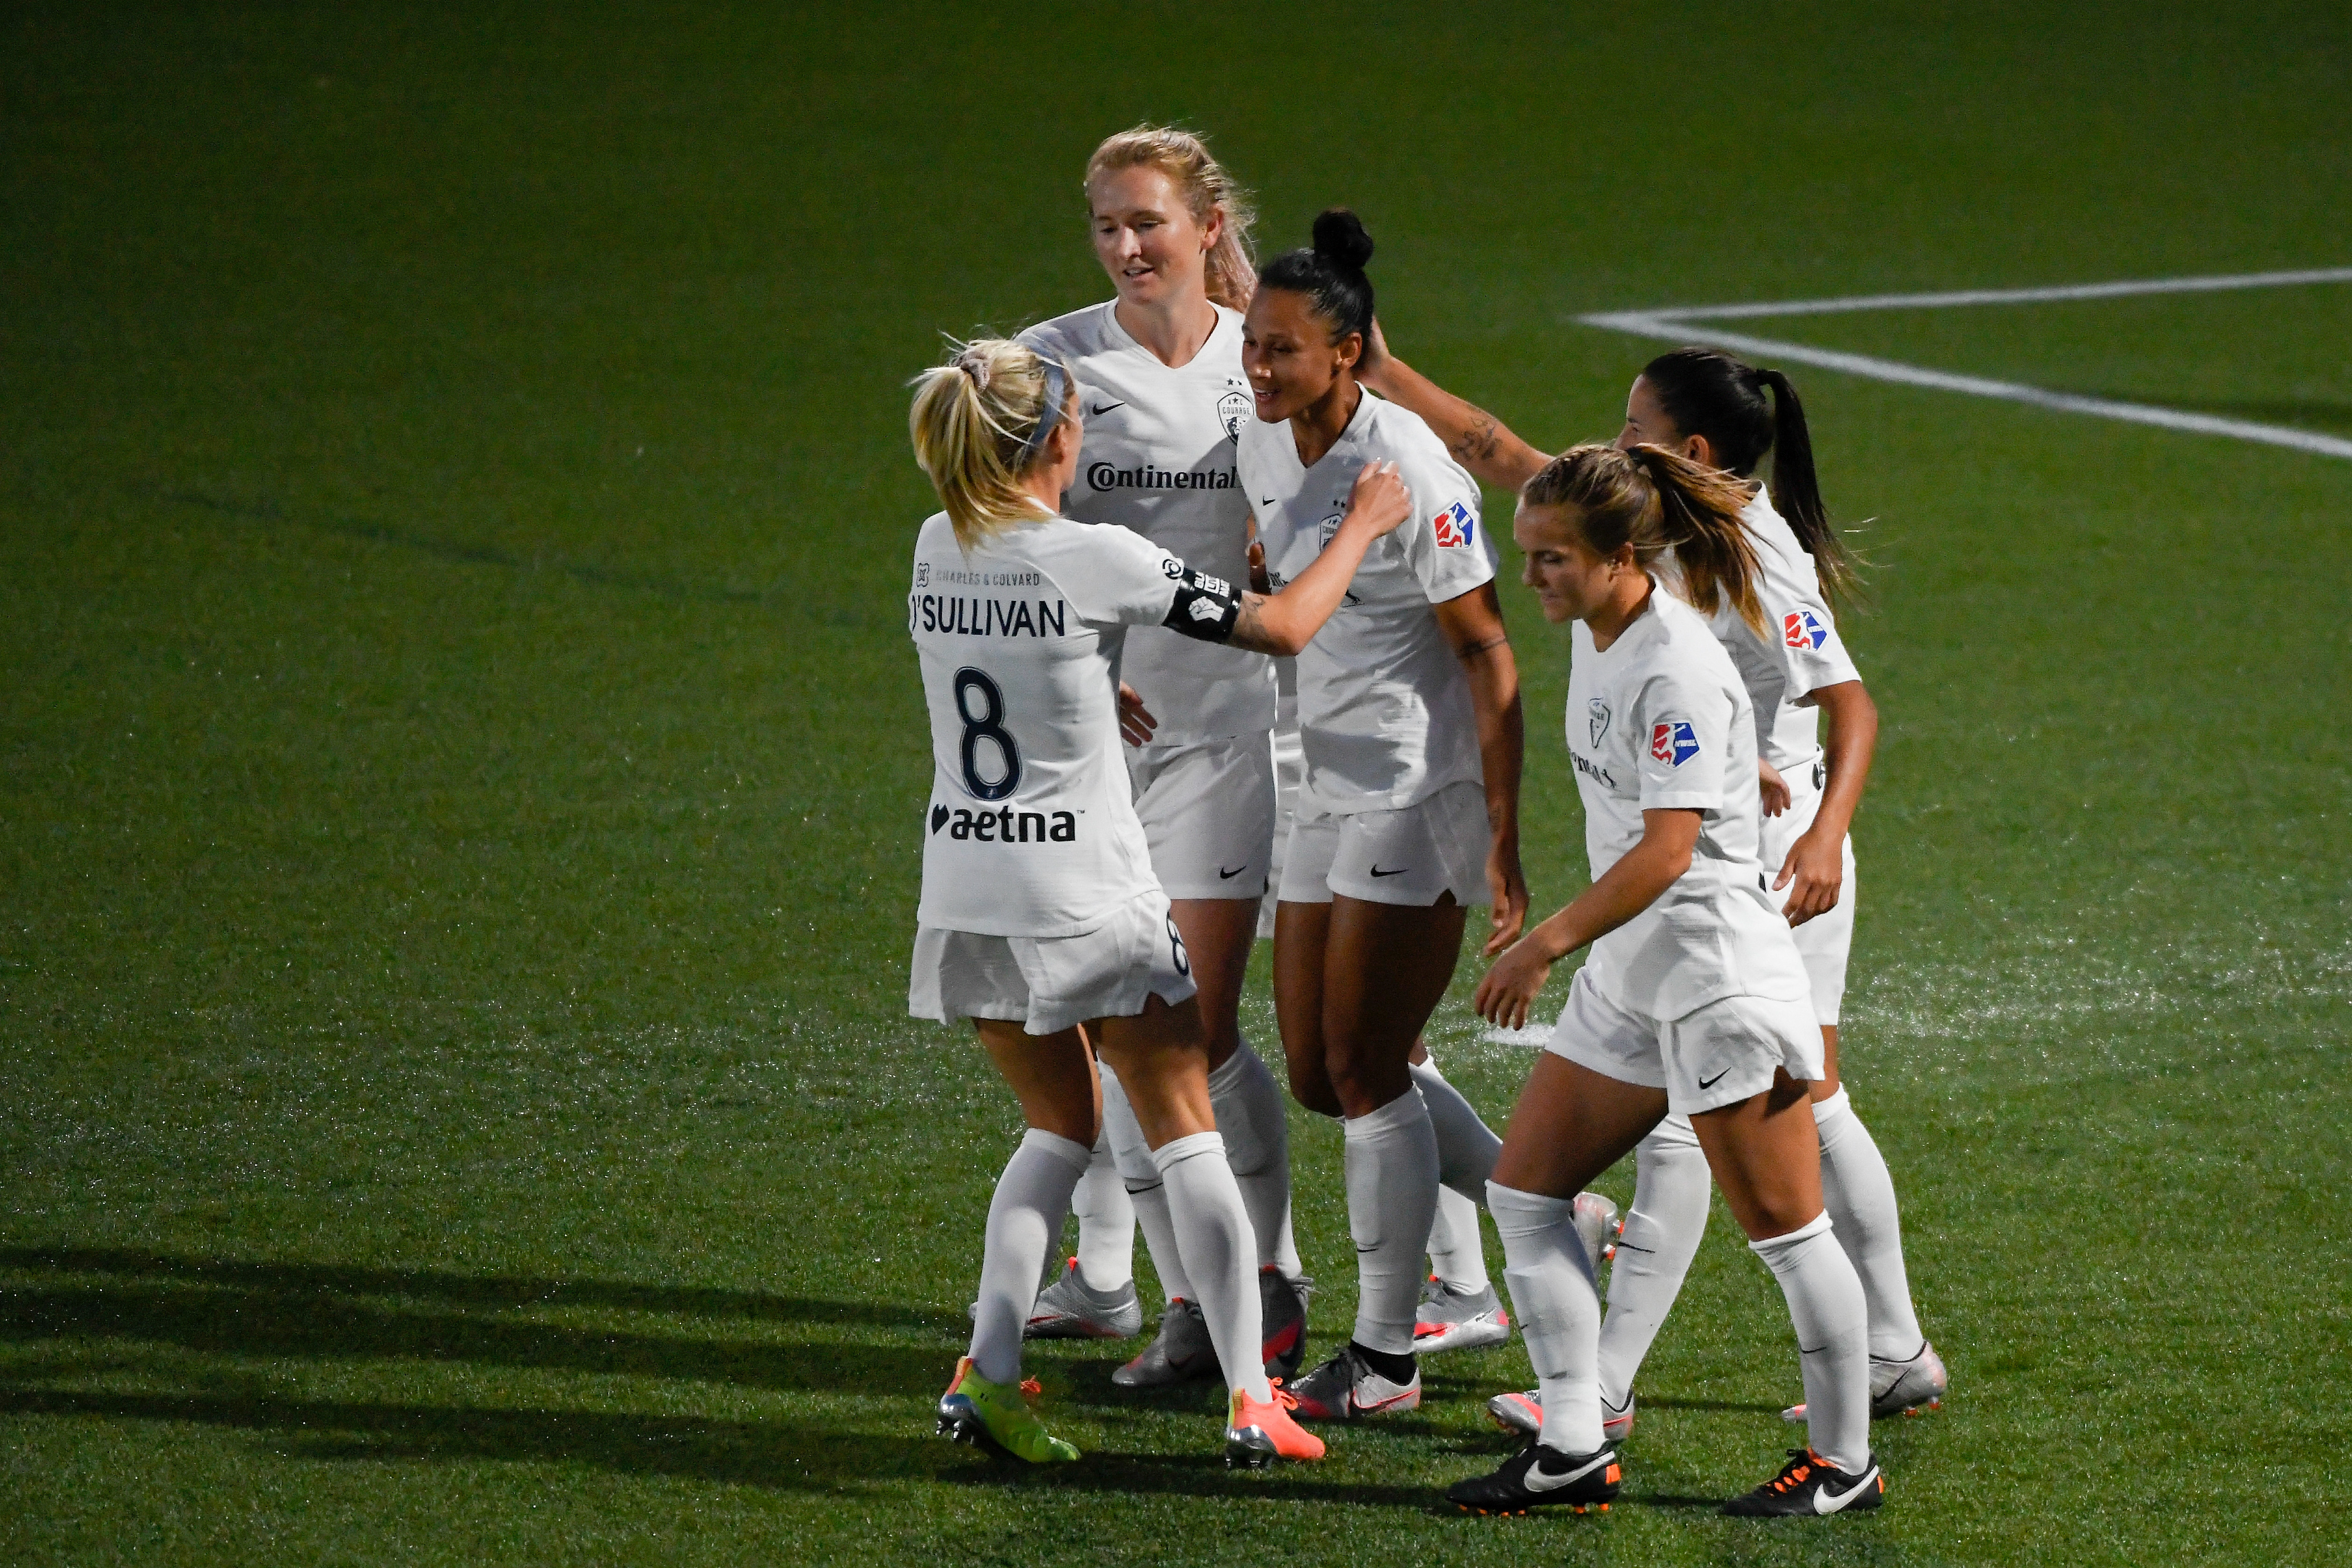 2020 NWSL Challenge Cup - Day 3